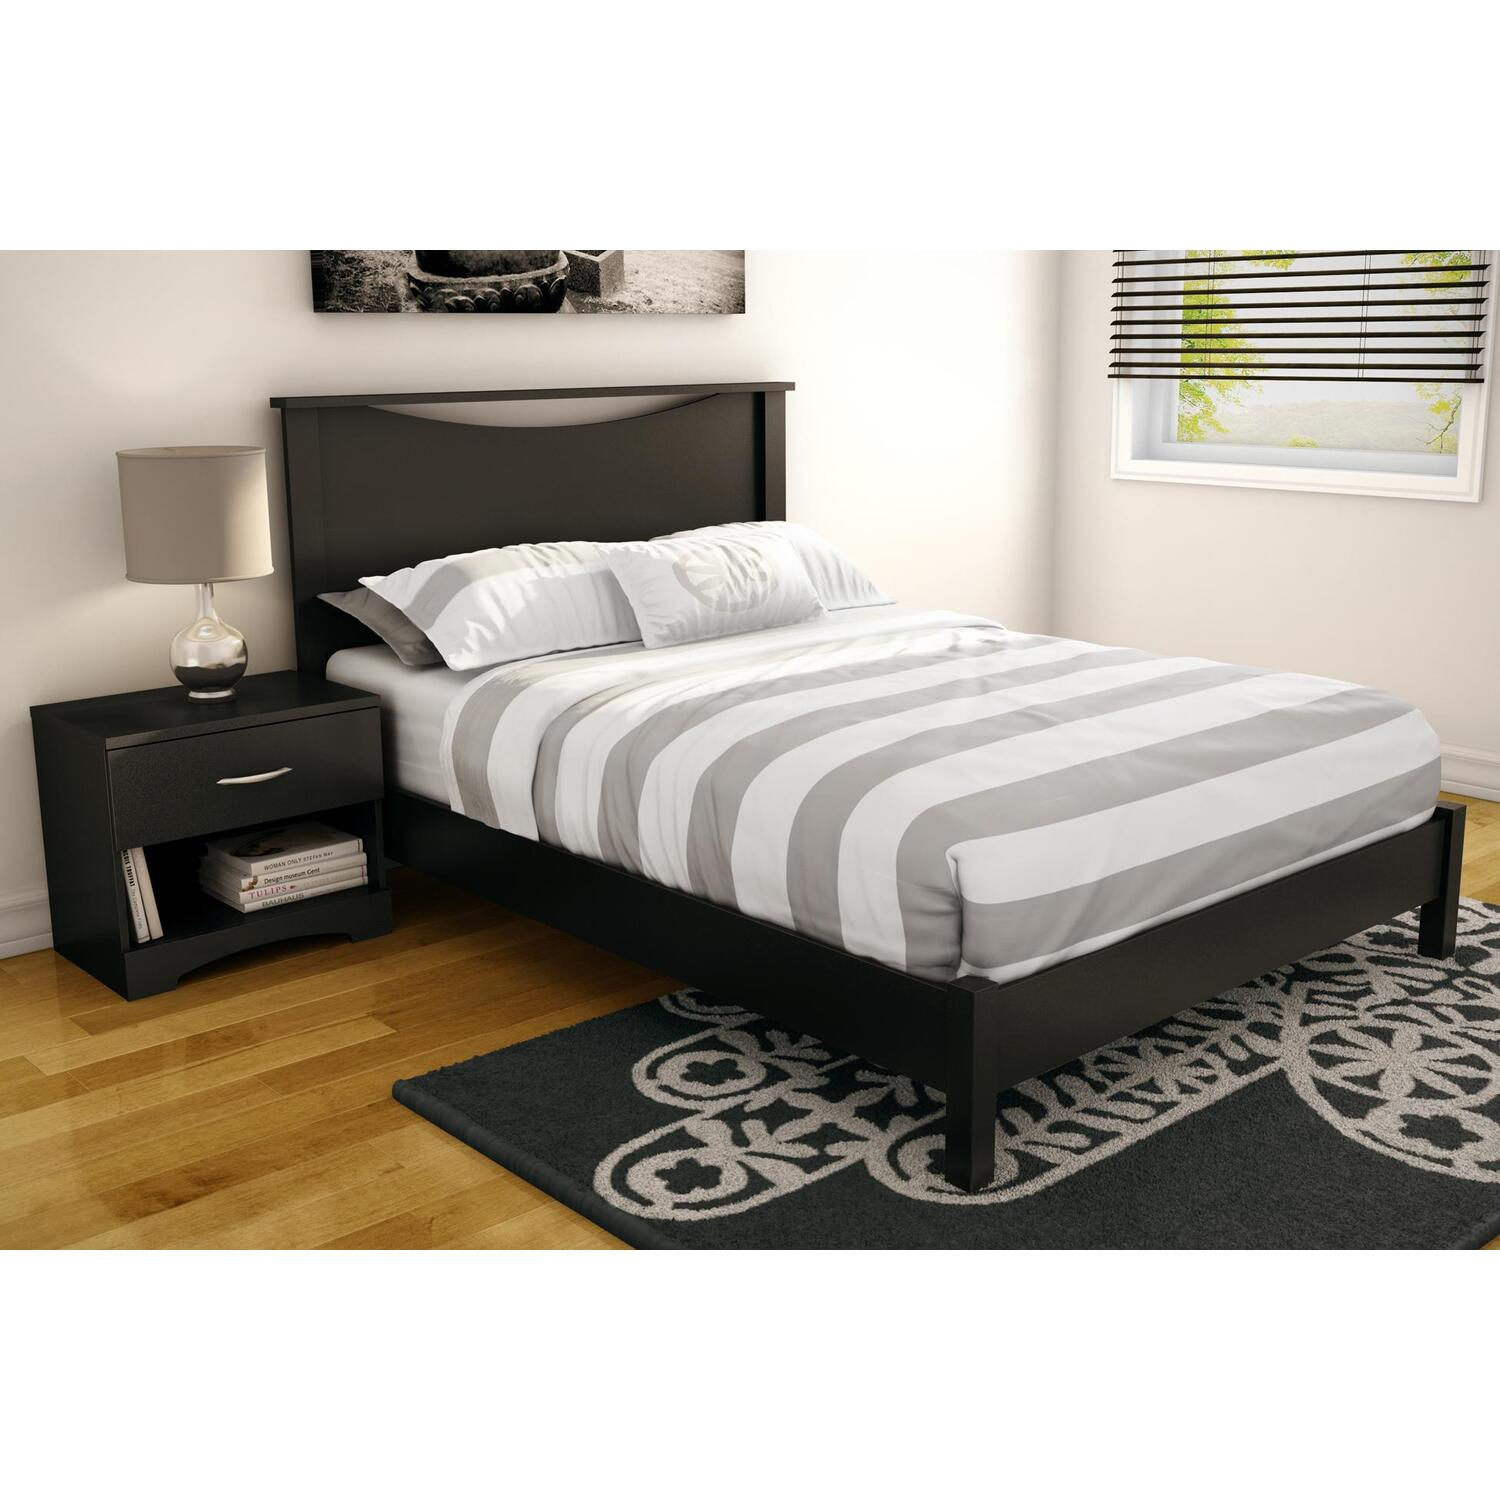 Step One Full Platform Bed U0026 Headboard In Pure Black   [3070FBBLK]